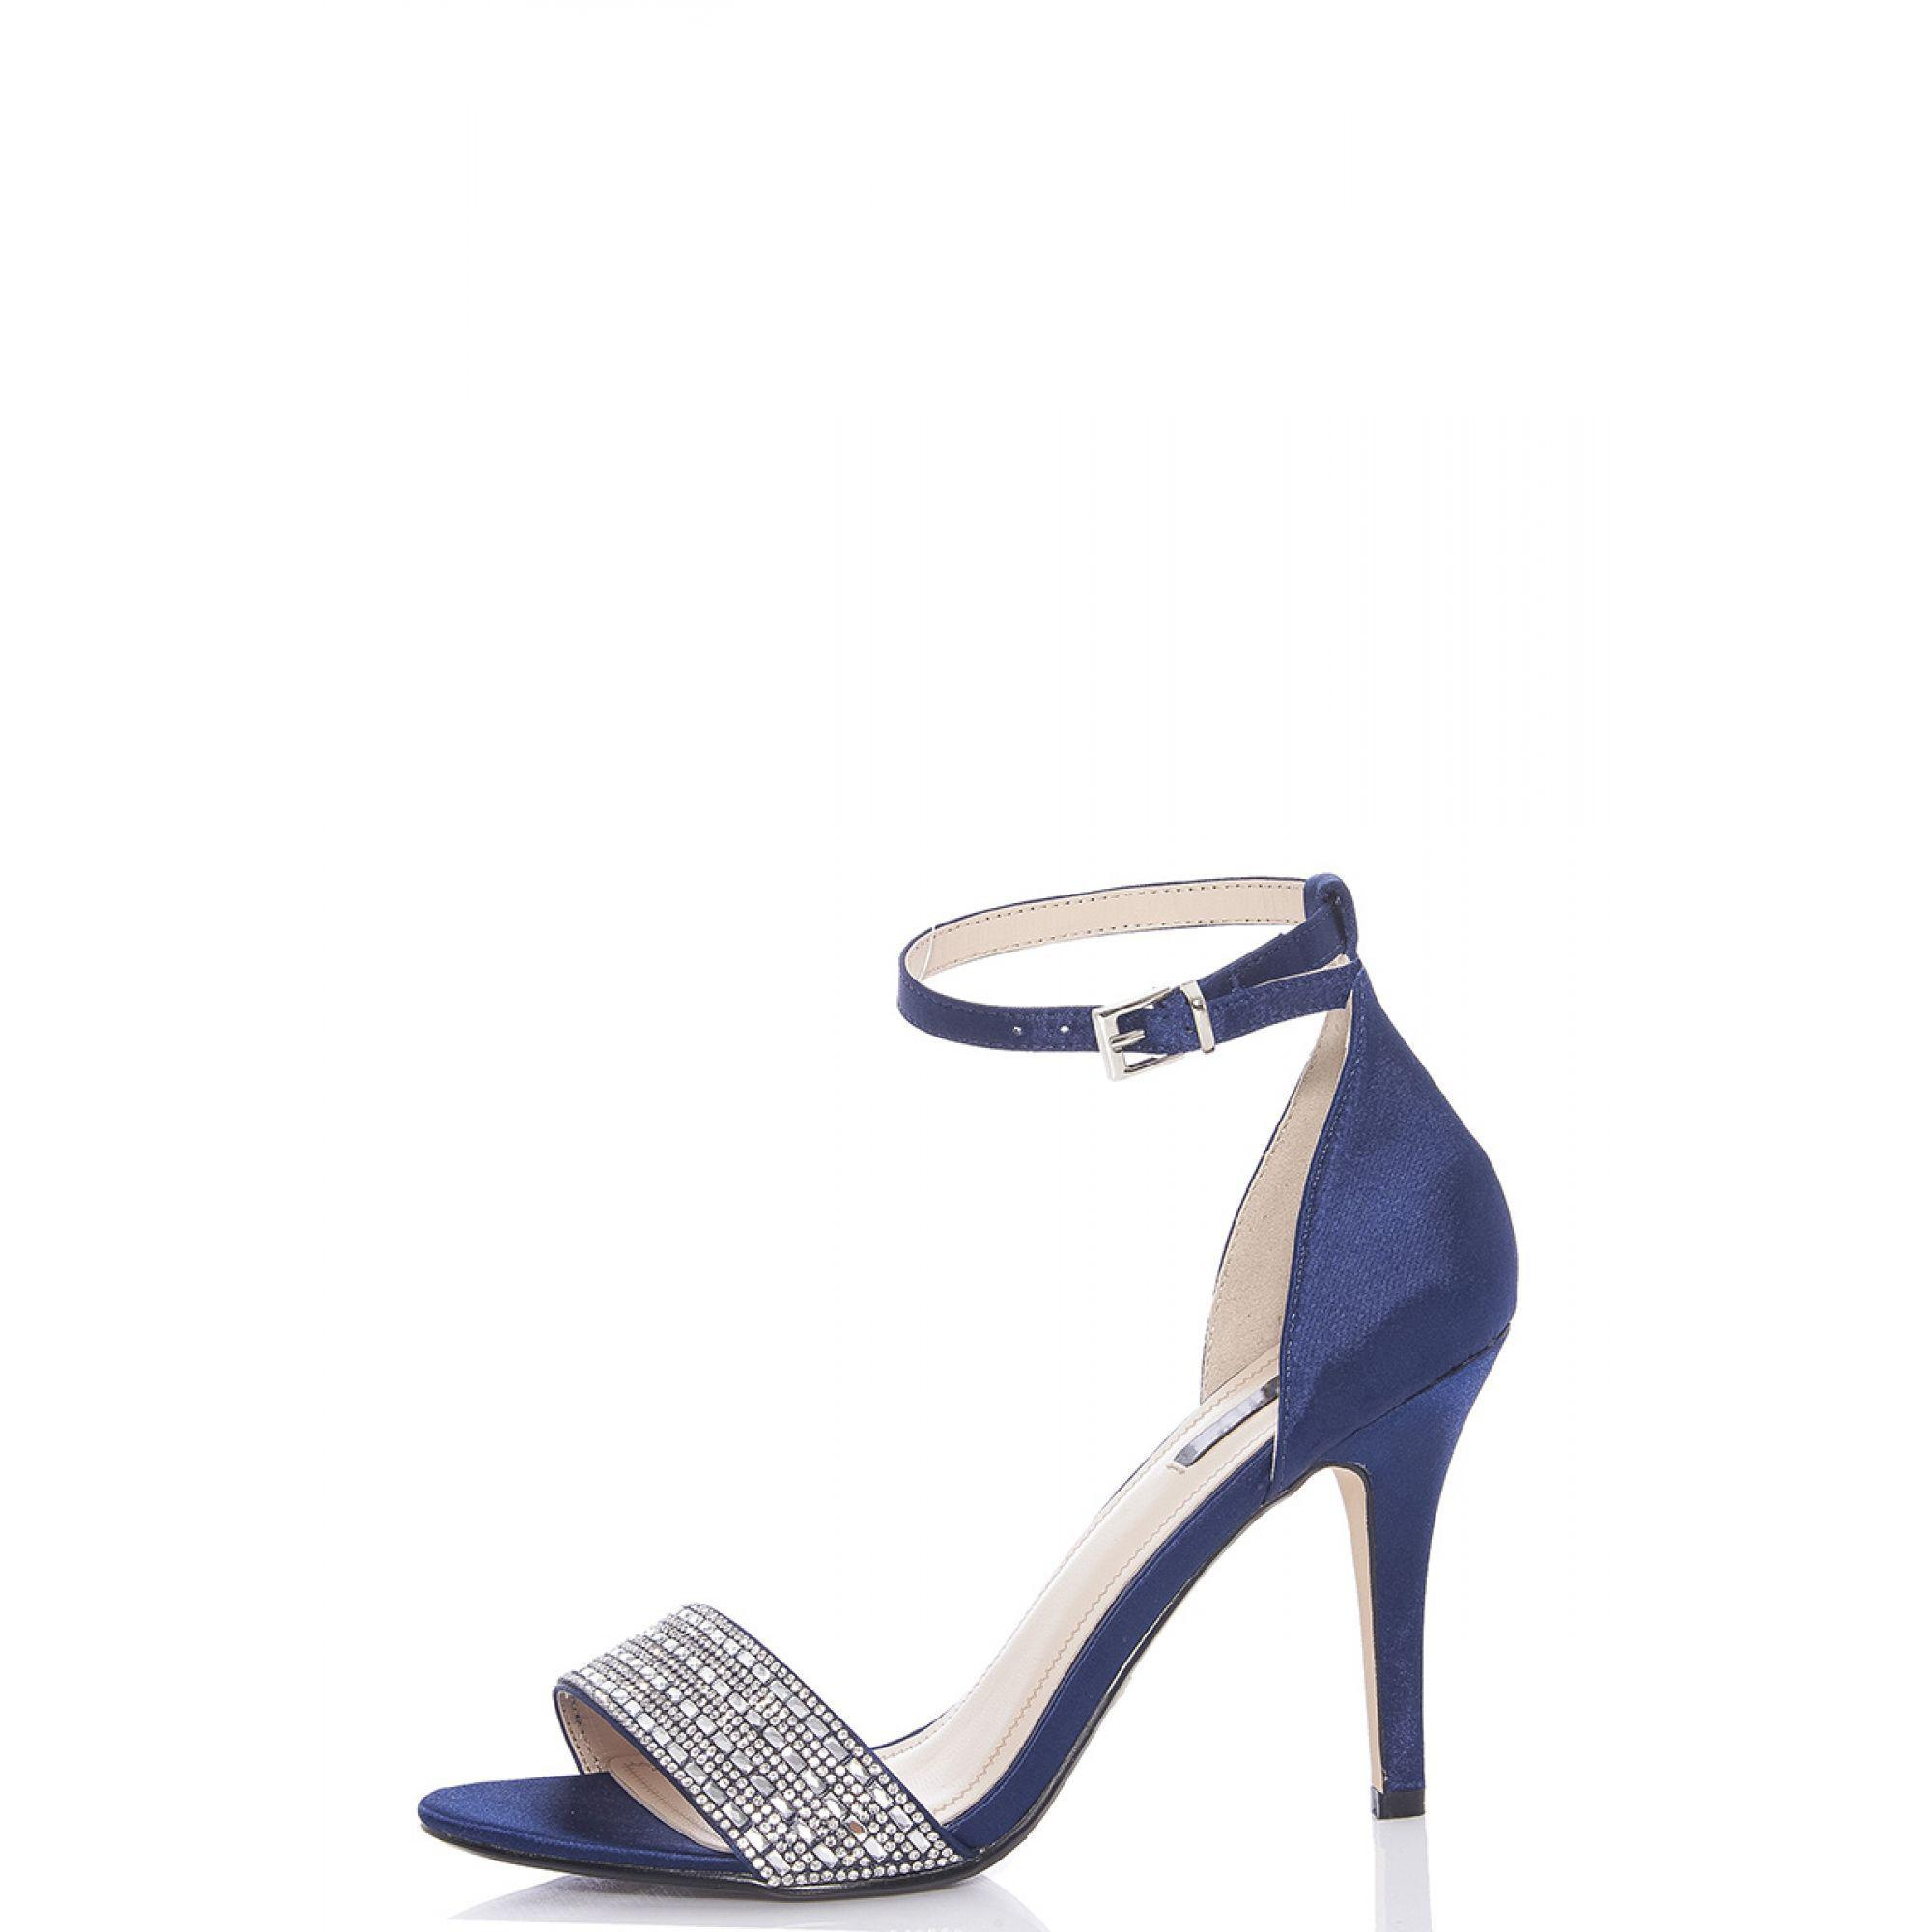 63d30eb94bf6 Quiz Navy Blue Satin Diamante Strap Heel Sandals in Blue - Lyst